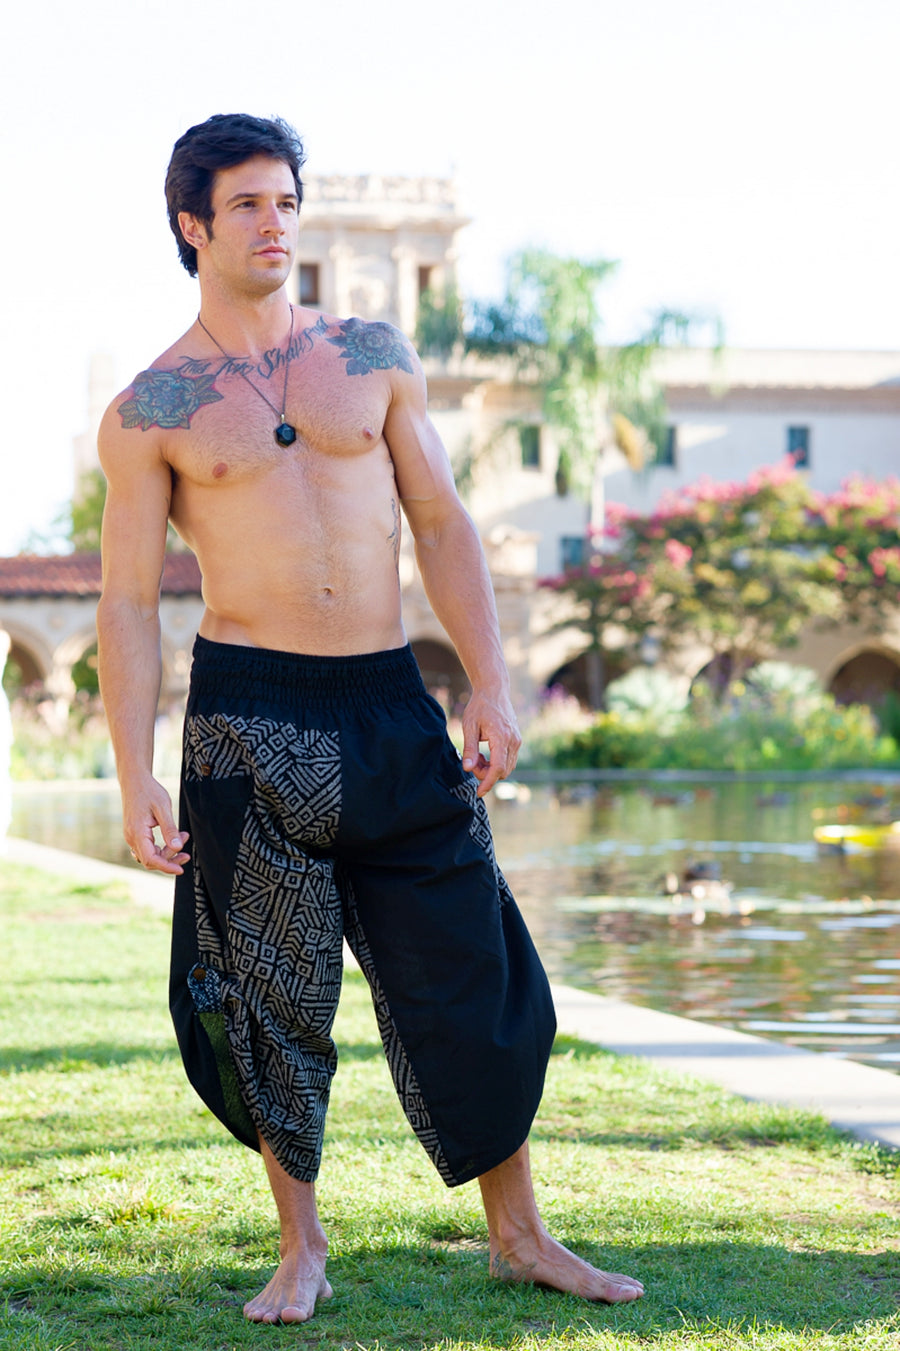 Samurai Elastic Shorts in Grey Swirl-The High Thai-The High Thai-Yoga Pants-Harem Pants-Hippie Clothing-San Diego